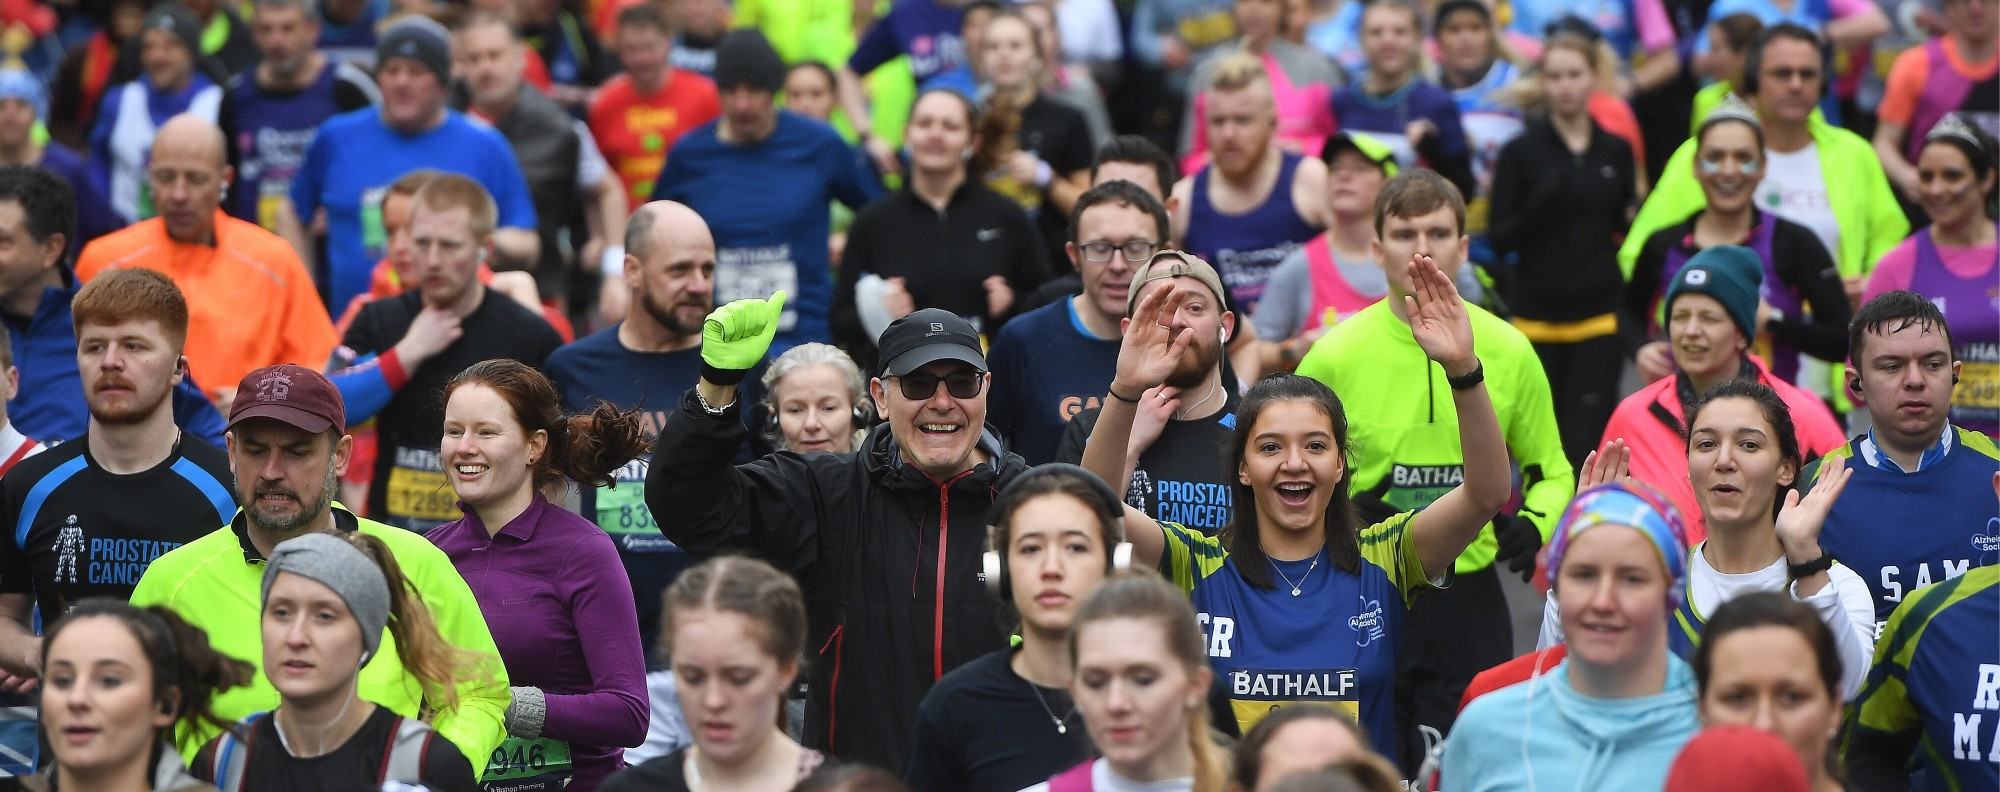 The Bath Half marathon run in Bath, Britain, 15 March 2020. Now is the time to ditch the can-do attitude and adopt social distancing. Photo: EPA-EFE/Andy Rain